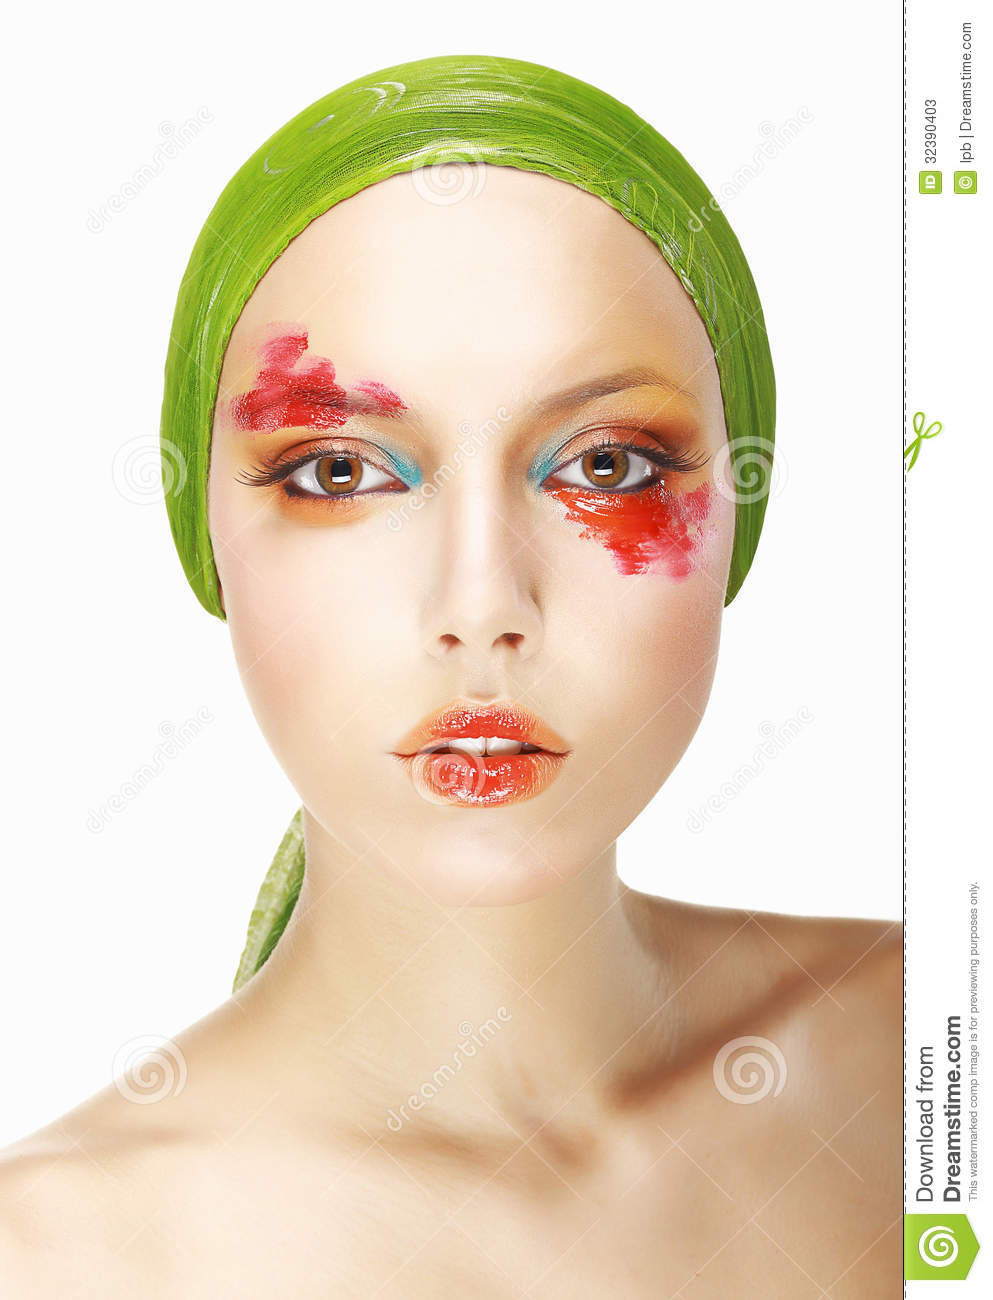 Pretty Sensual Spectacular Woman's face with bright Make up